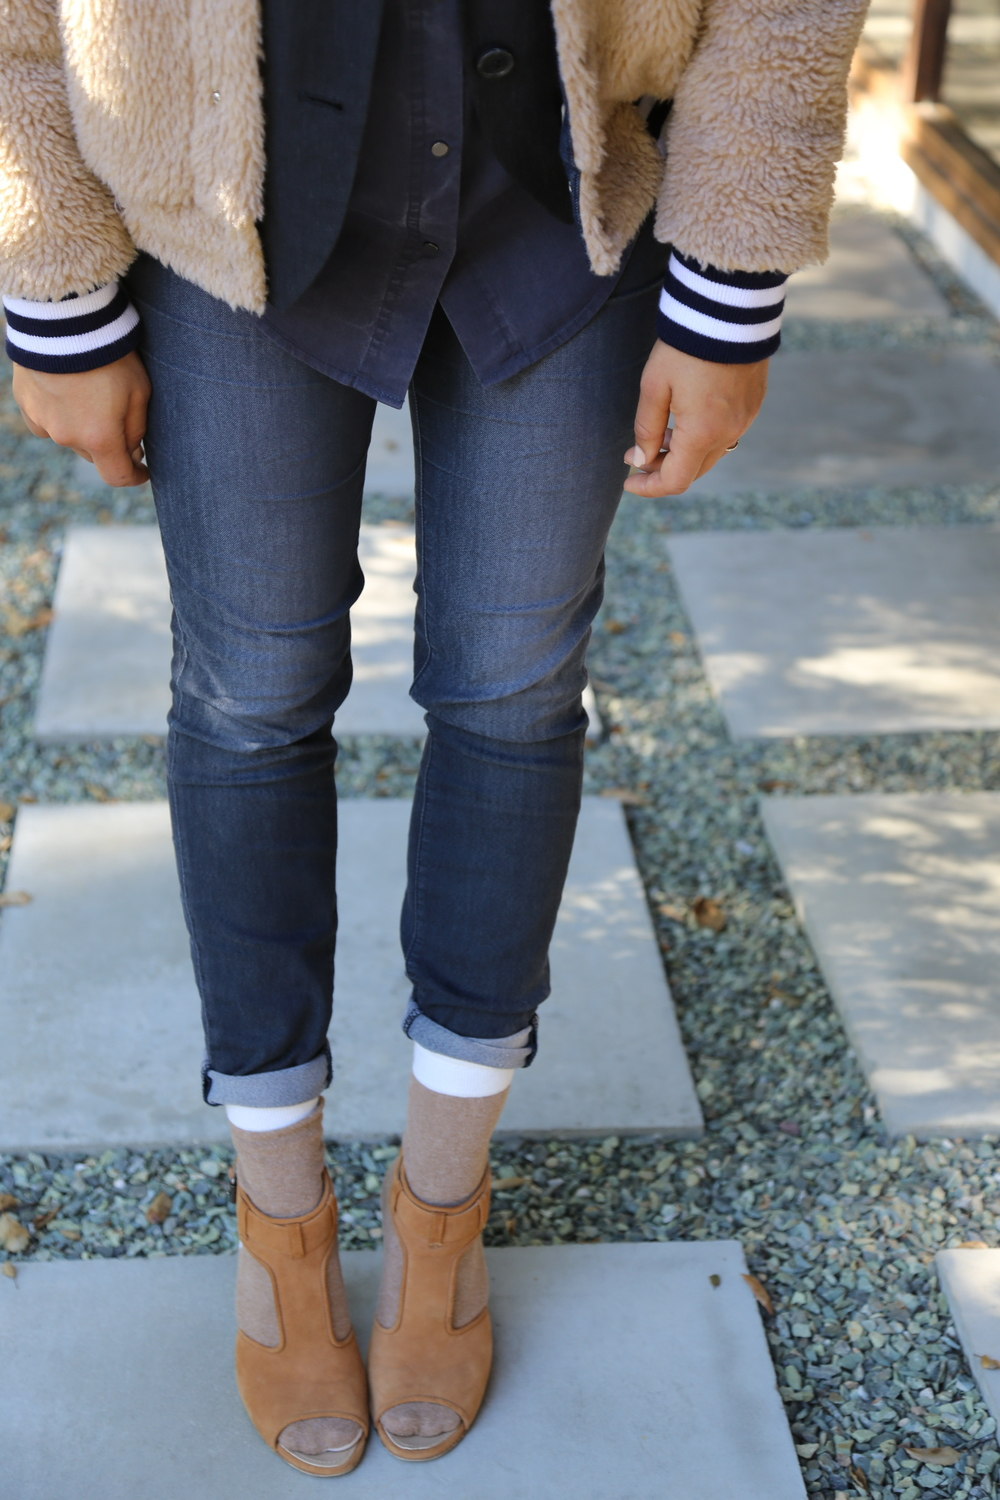 j-brand-jeans-navy-skinny-mother-furry-jacket-proenza-schouler-heels-nude-alexander-wang-blue-button-up-los-angeles.jpg